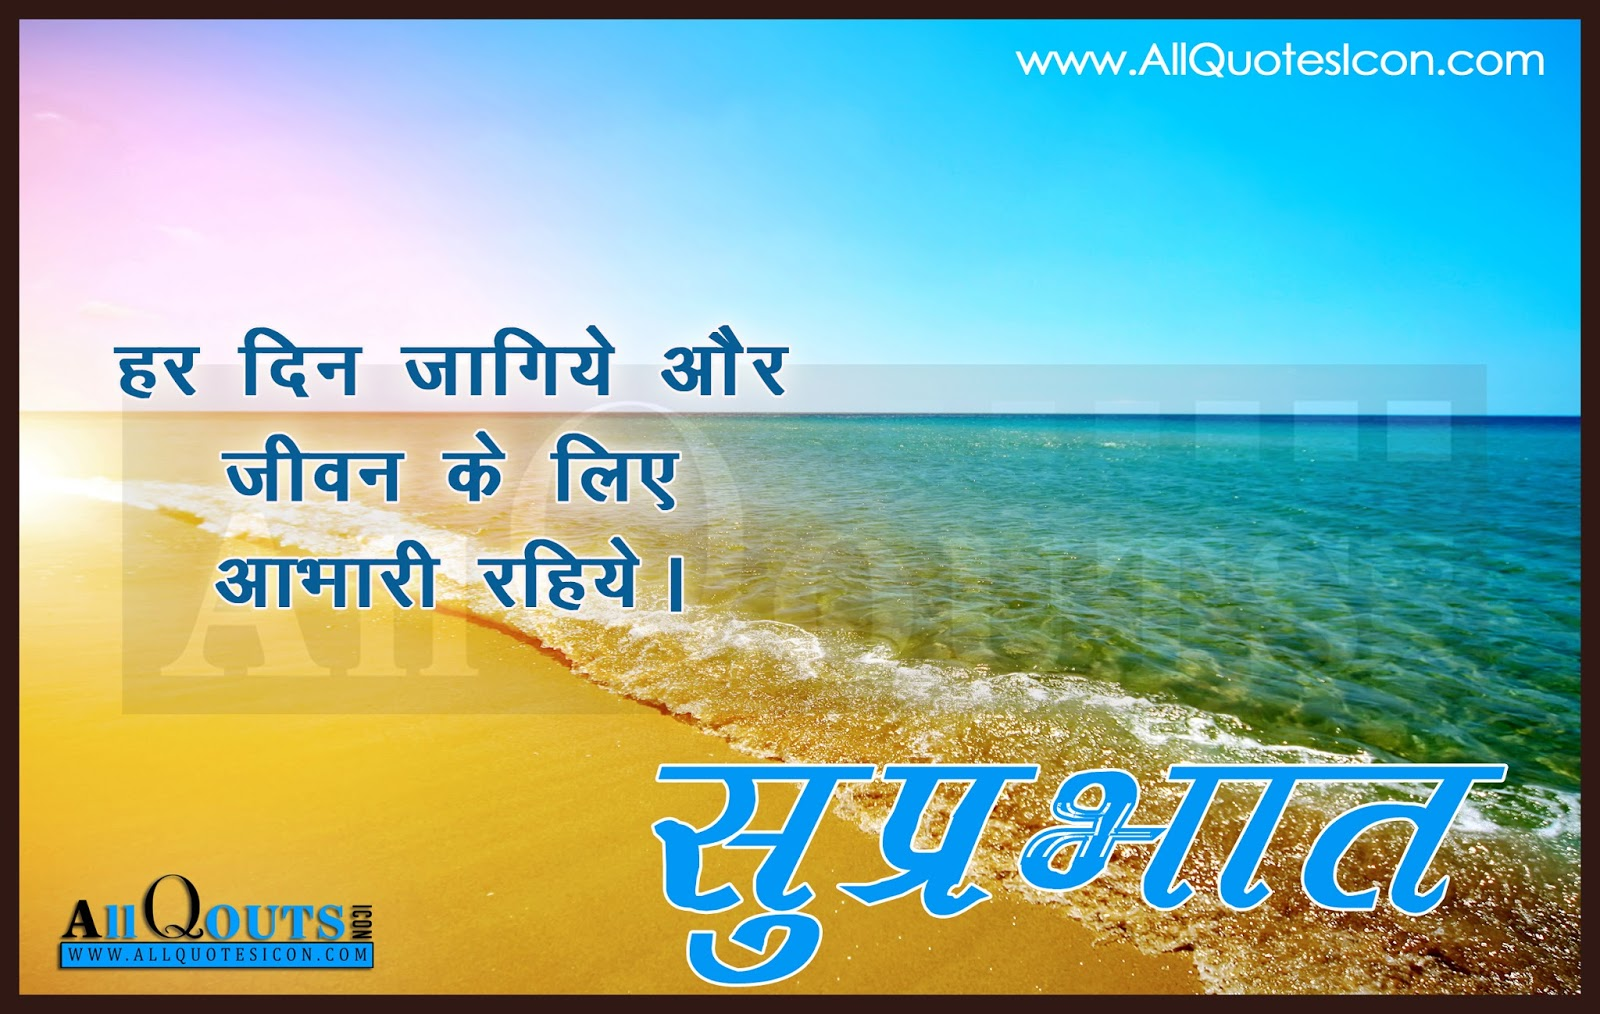 Good Morning Images With Quotes In Hindi Wish Good Morning In